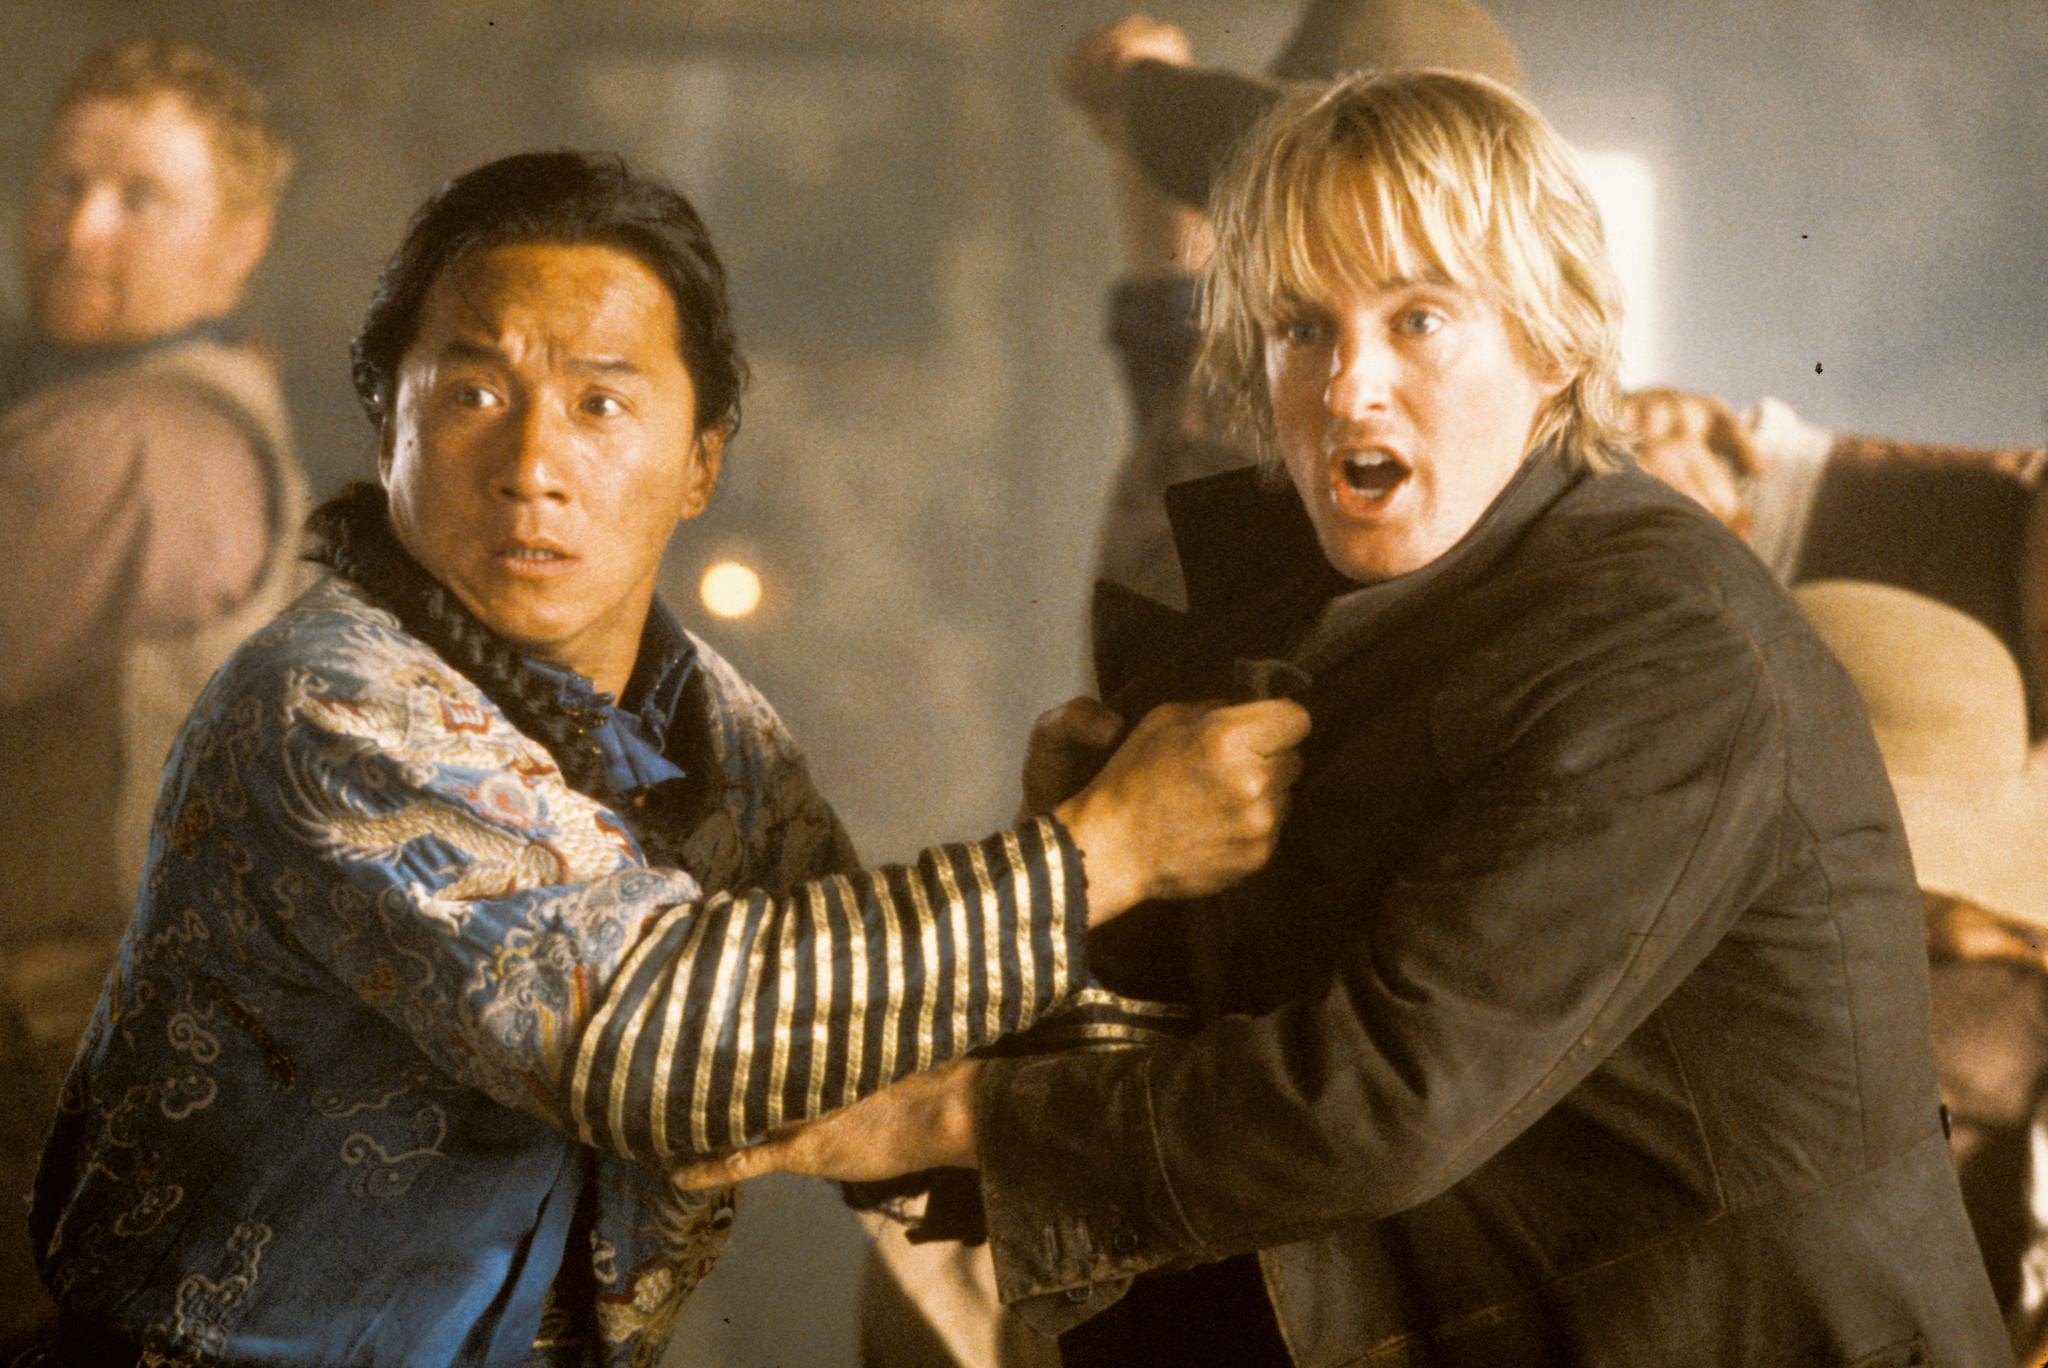 still-of-jackie-chan-and-owen-wilson-in-shanghai-noon-(2000)